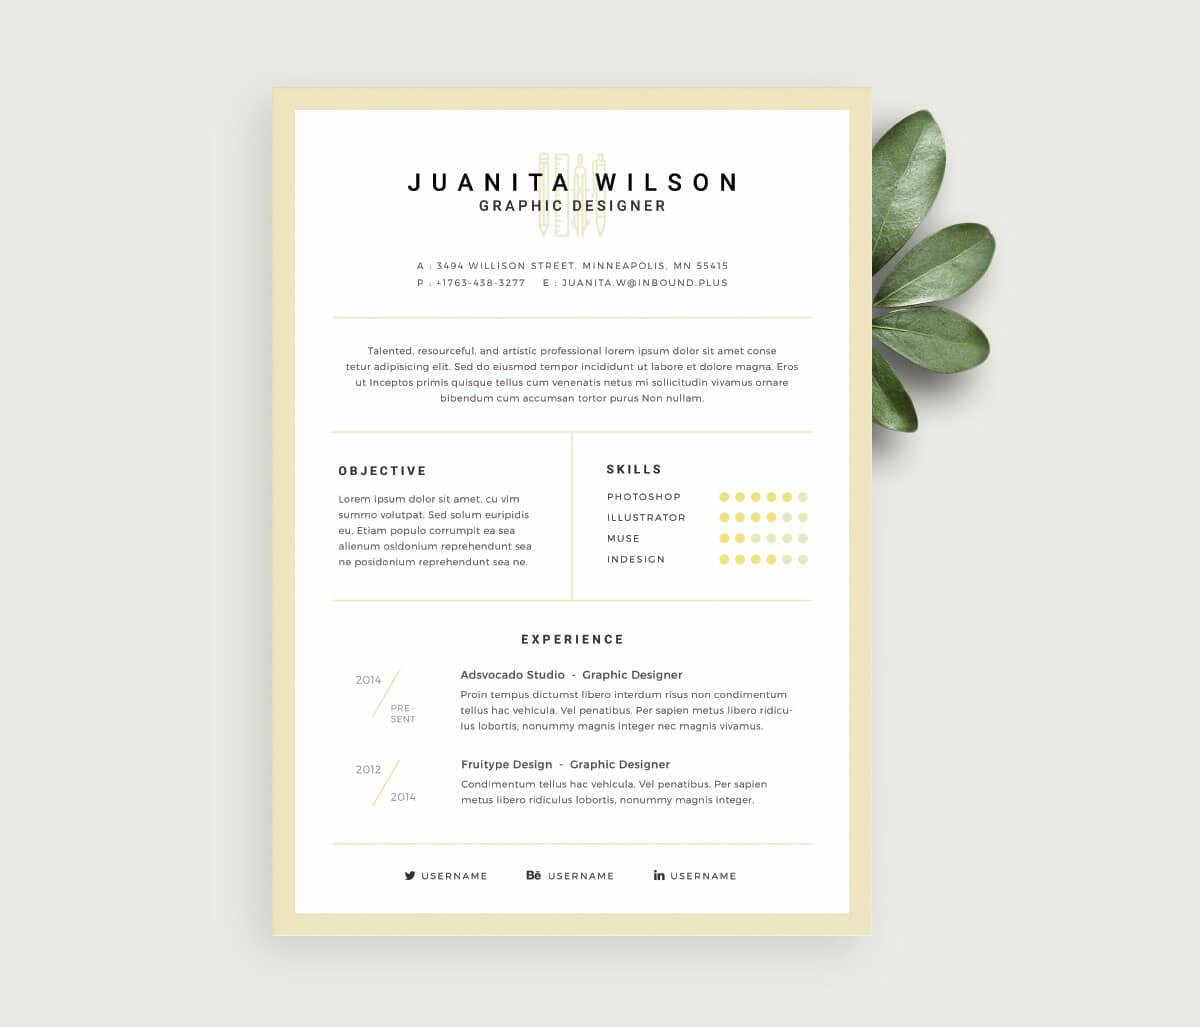 free resume templates 17 downloadable resume templates to use - Free Designer Resume Templates